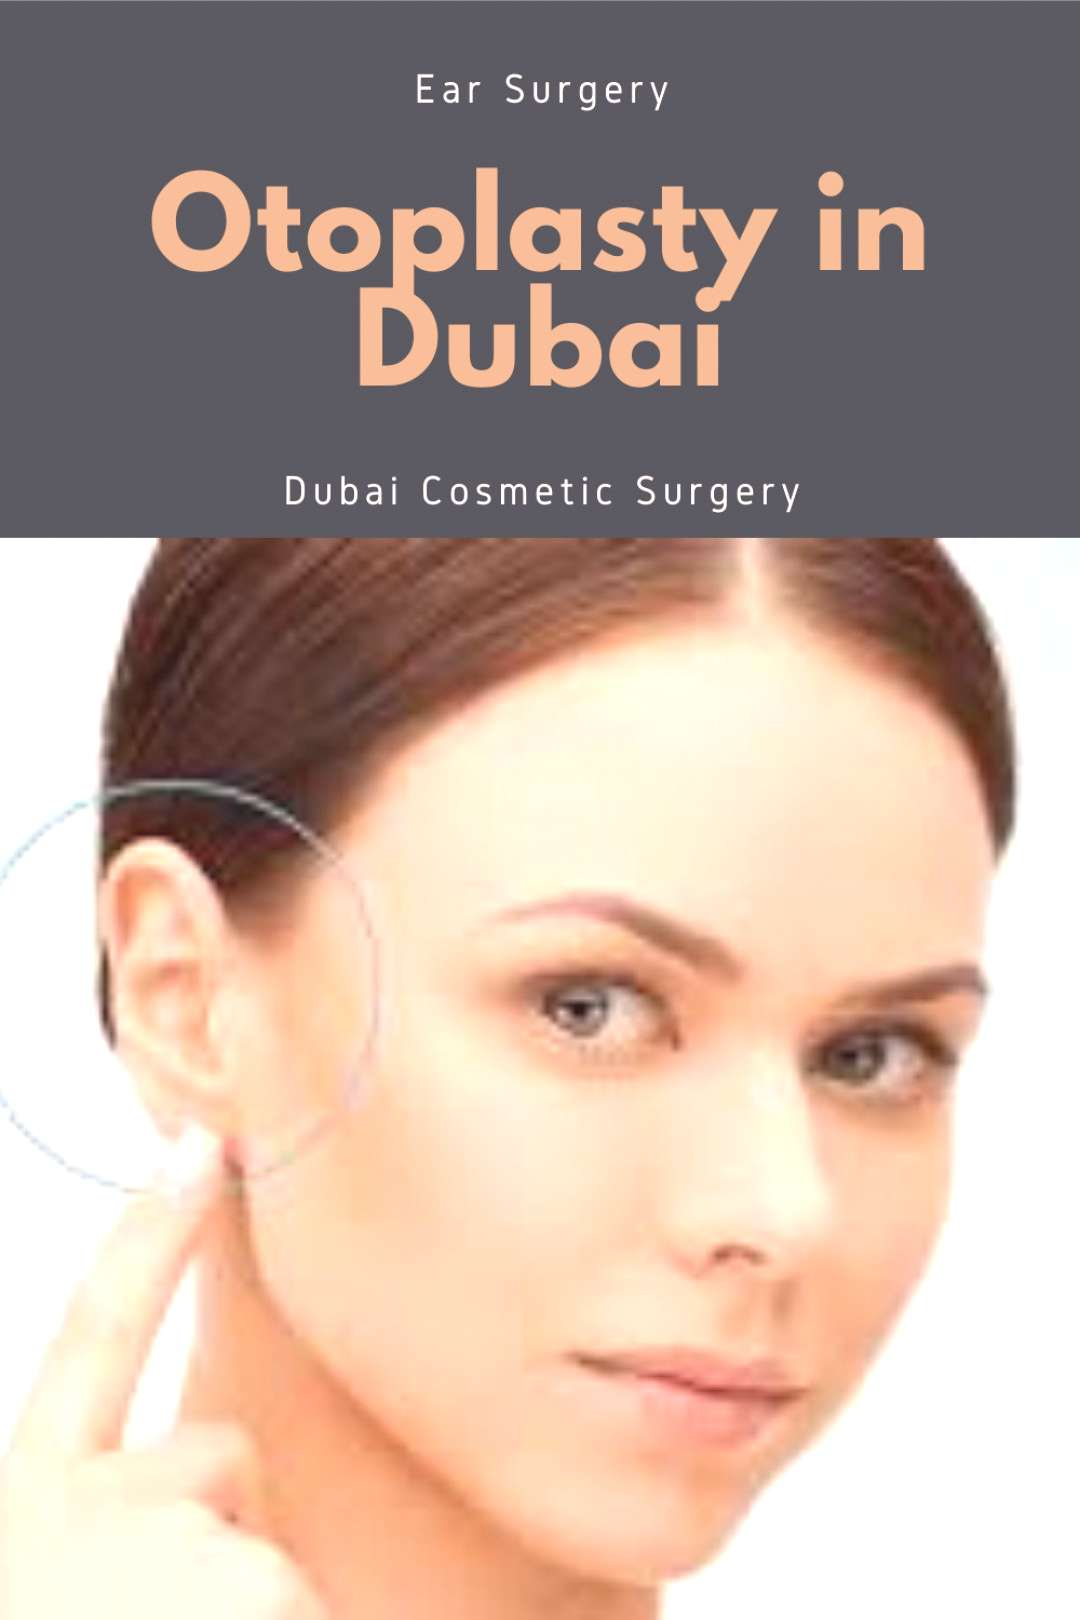 Are you looking for ear surgery in Dubai and Abu Dhabi? The Dubai Cosmetic Surgery provides Otoplas